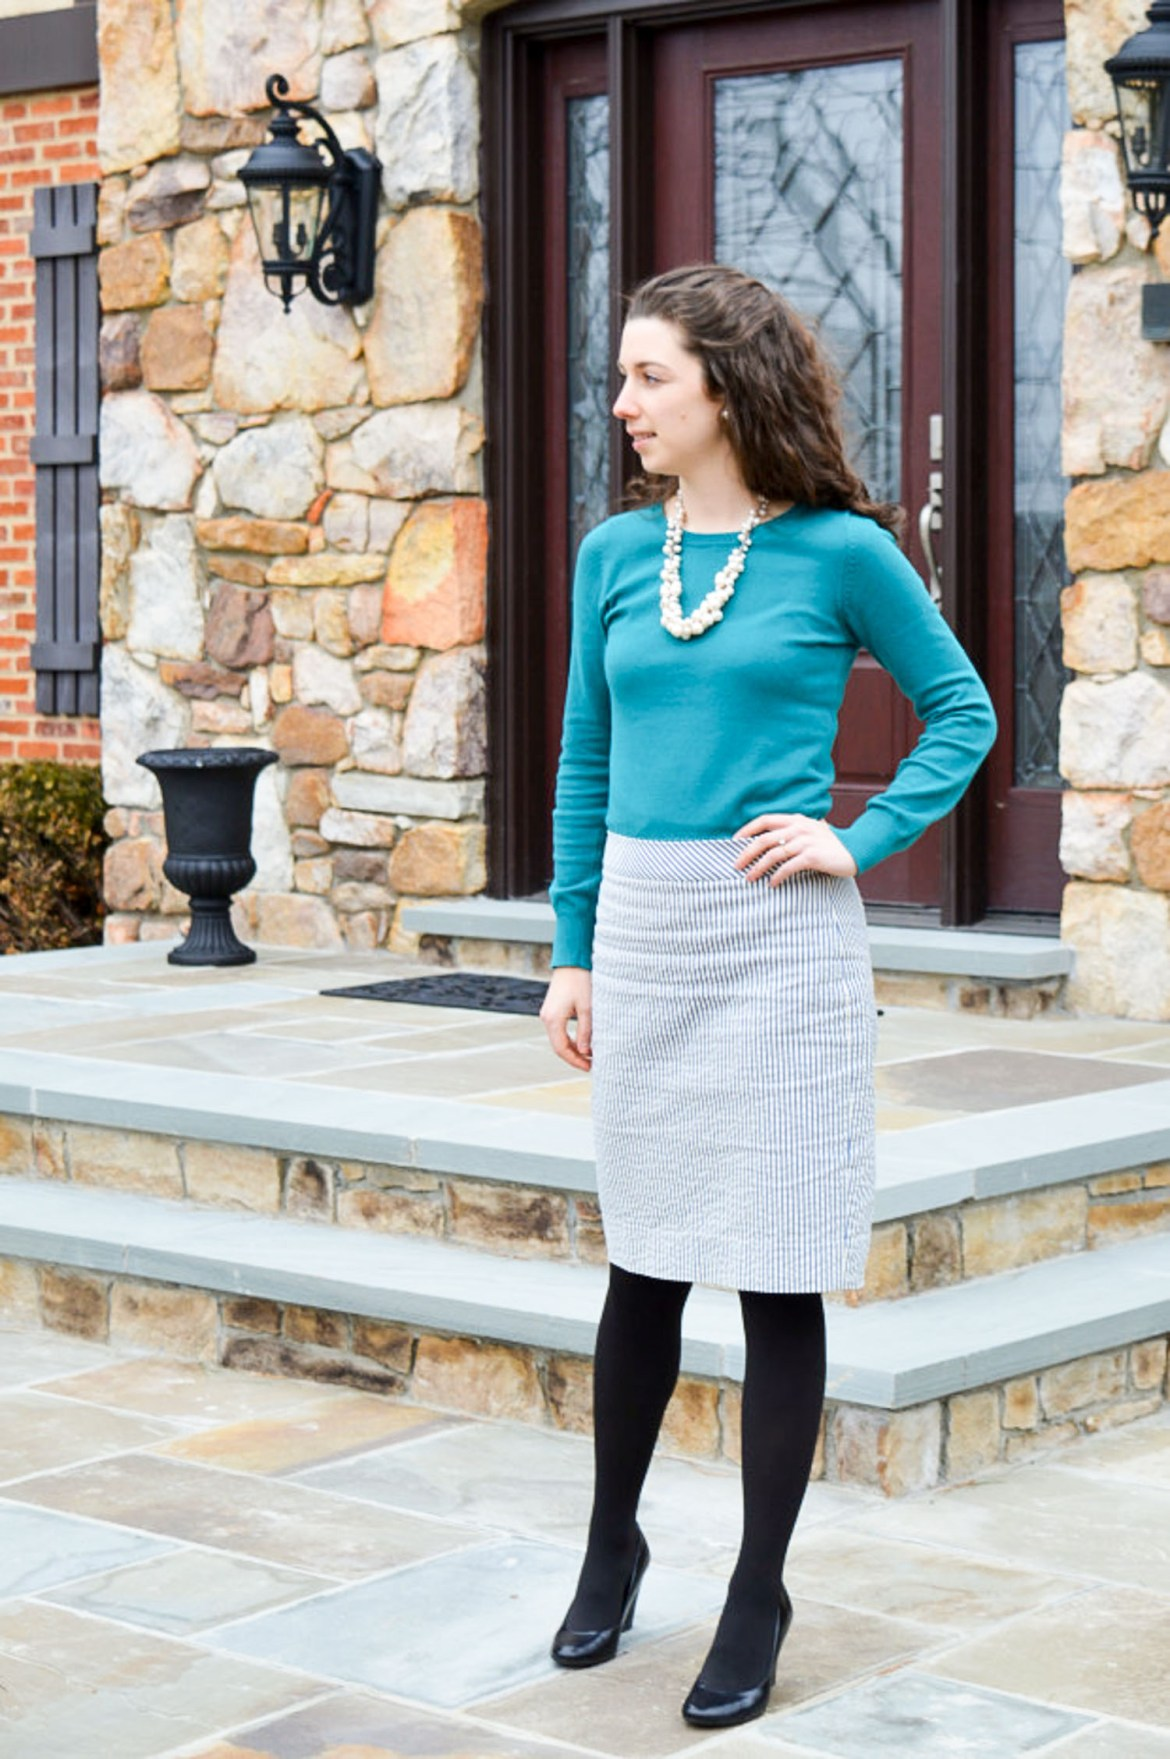 Pencil skirt + tights + wedges \\ Easy winter business casual